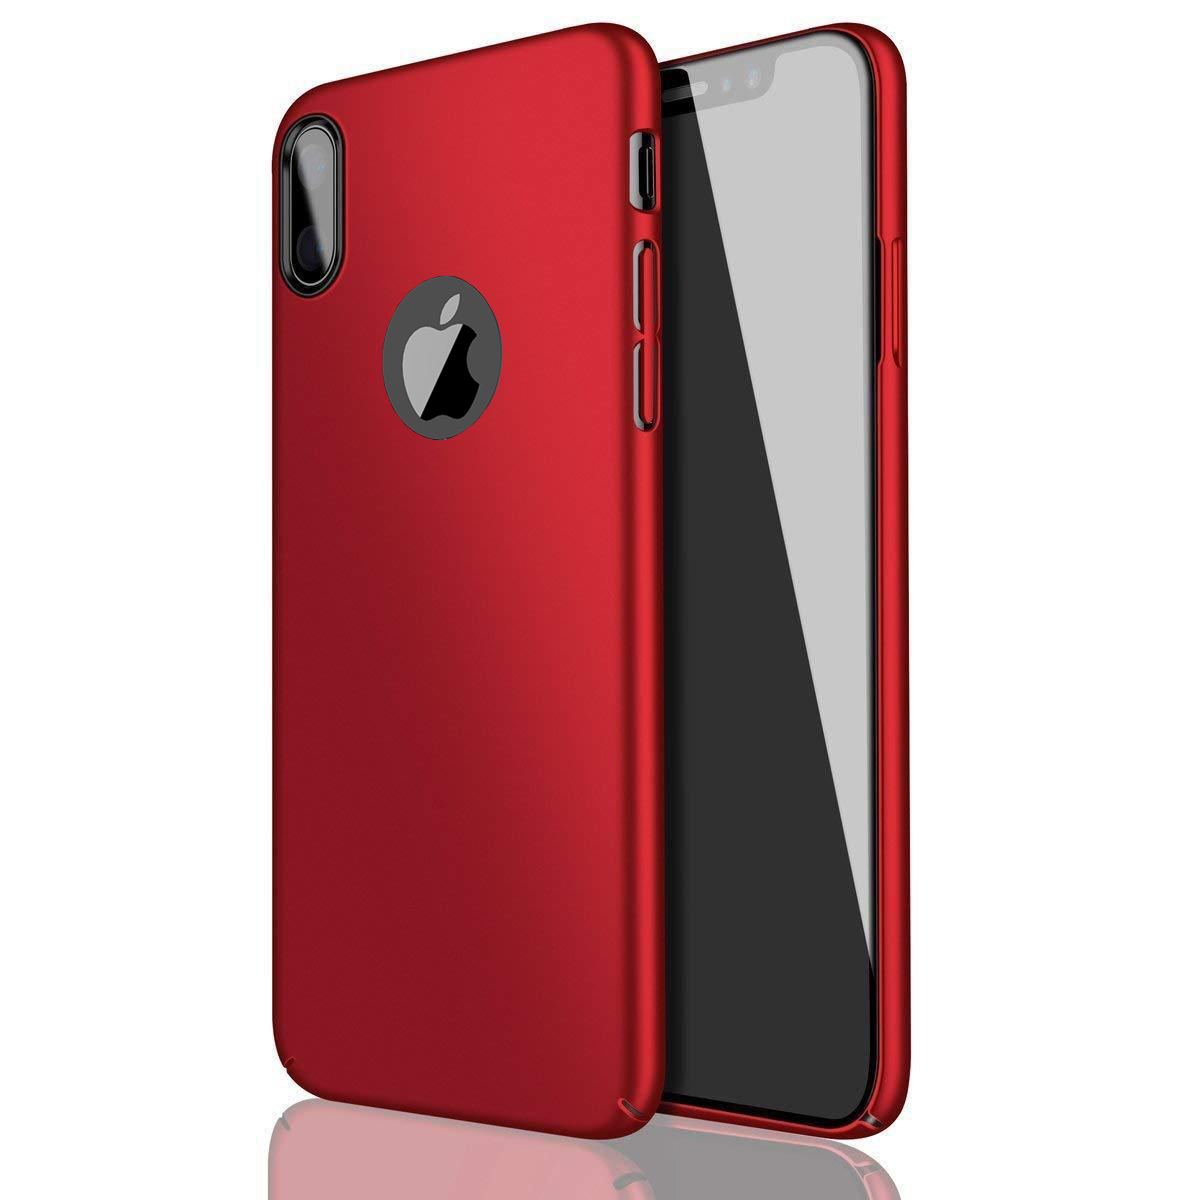 Thin-Slim-Hard-Case-Tempered-Glass-Cover-For-Apple-iPhone-X-XS-XR-Max-10-8-7-6s miniatuur 29